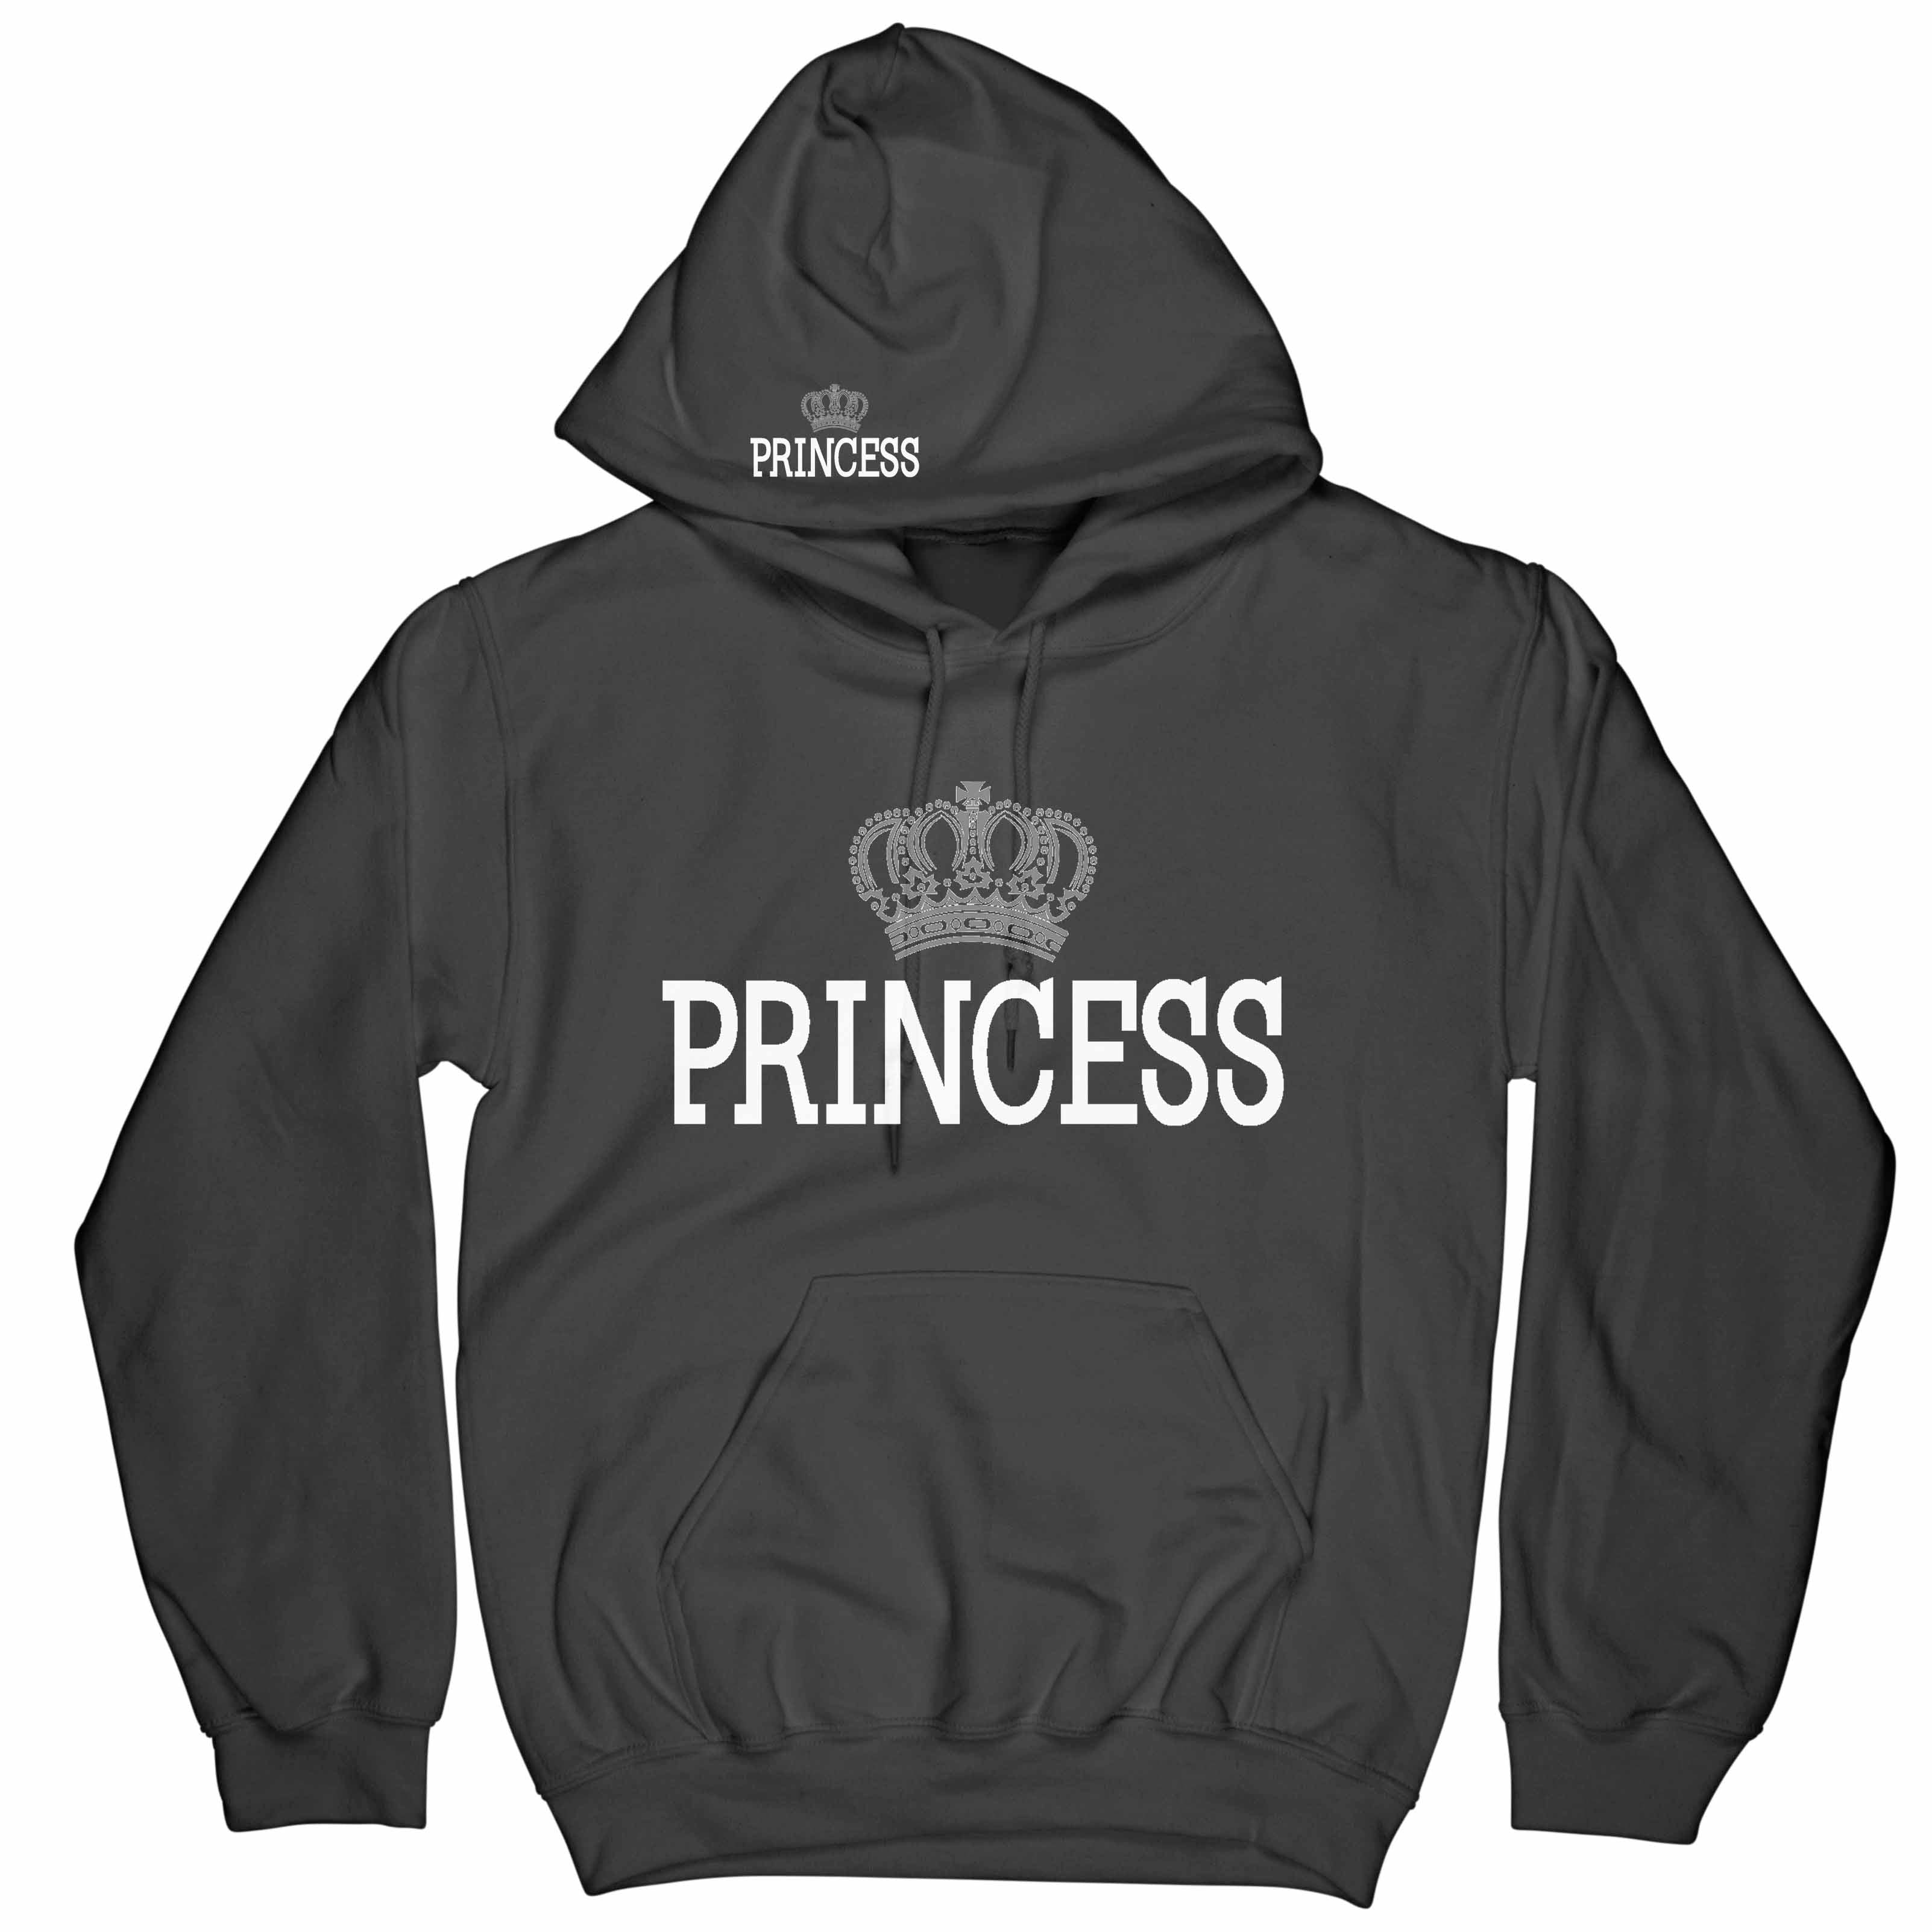 fee7dcc2e5f PRINCESS Hoodie – Custom ONE